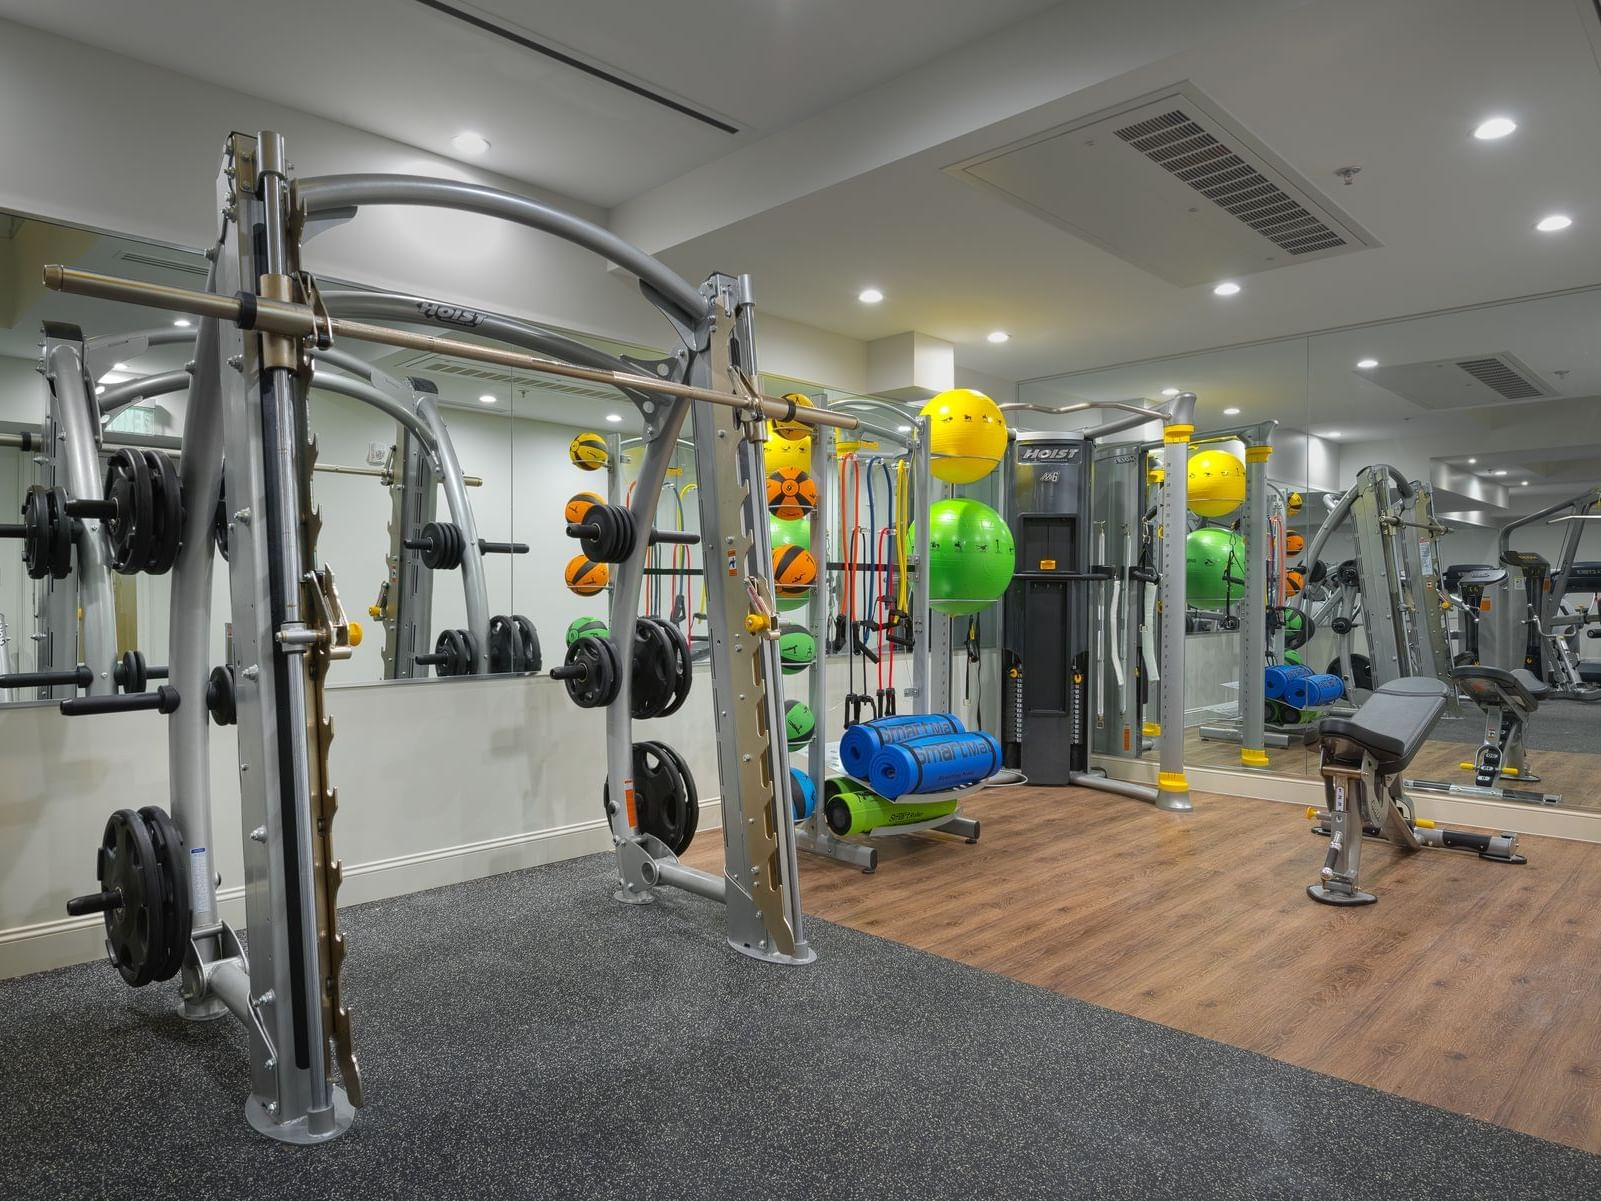 workout rack in fitness center